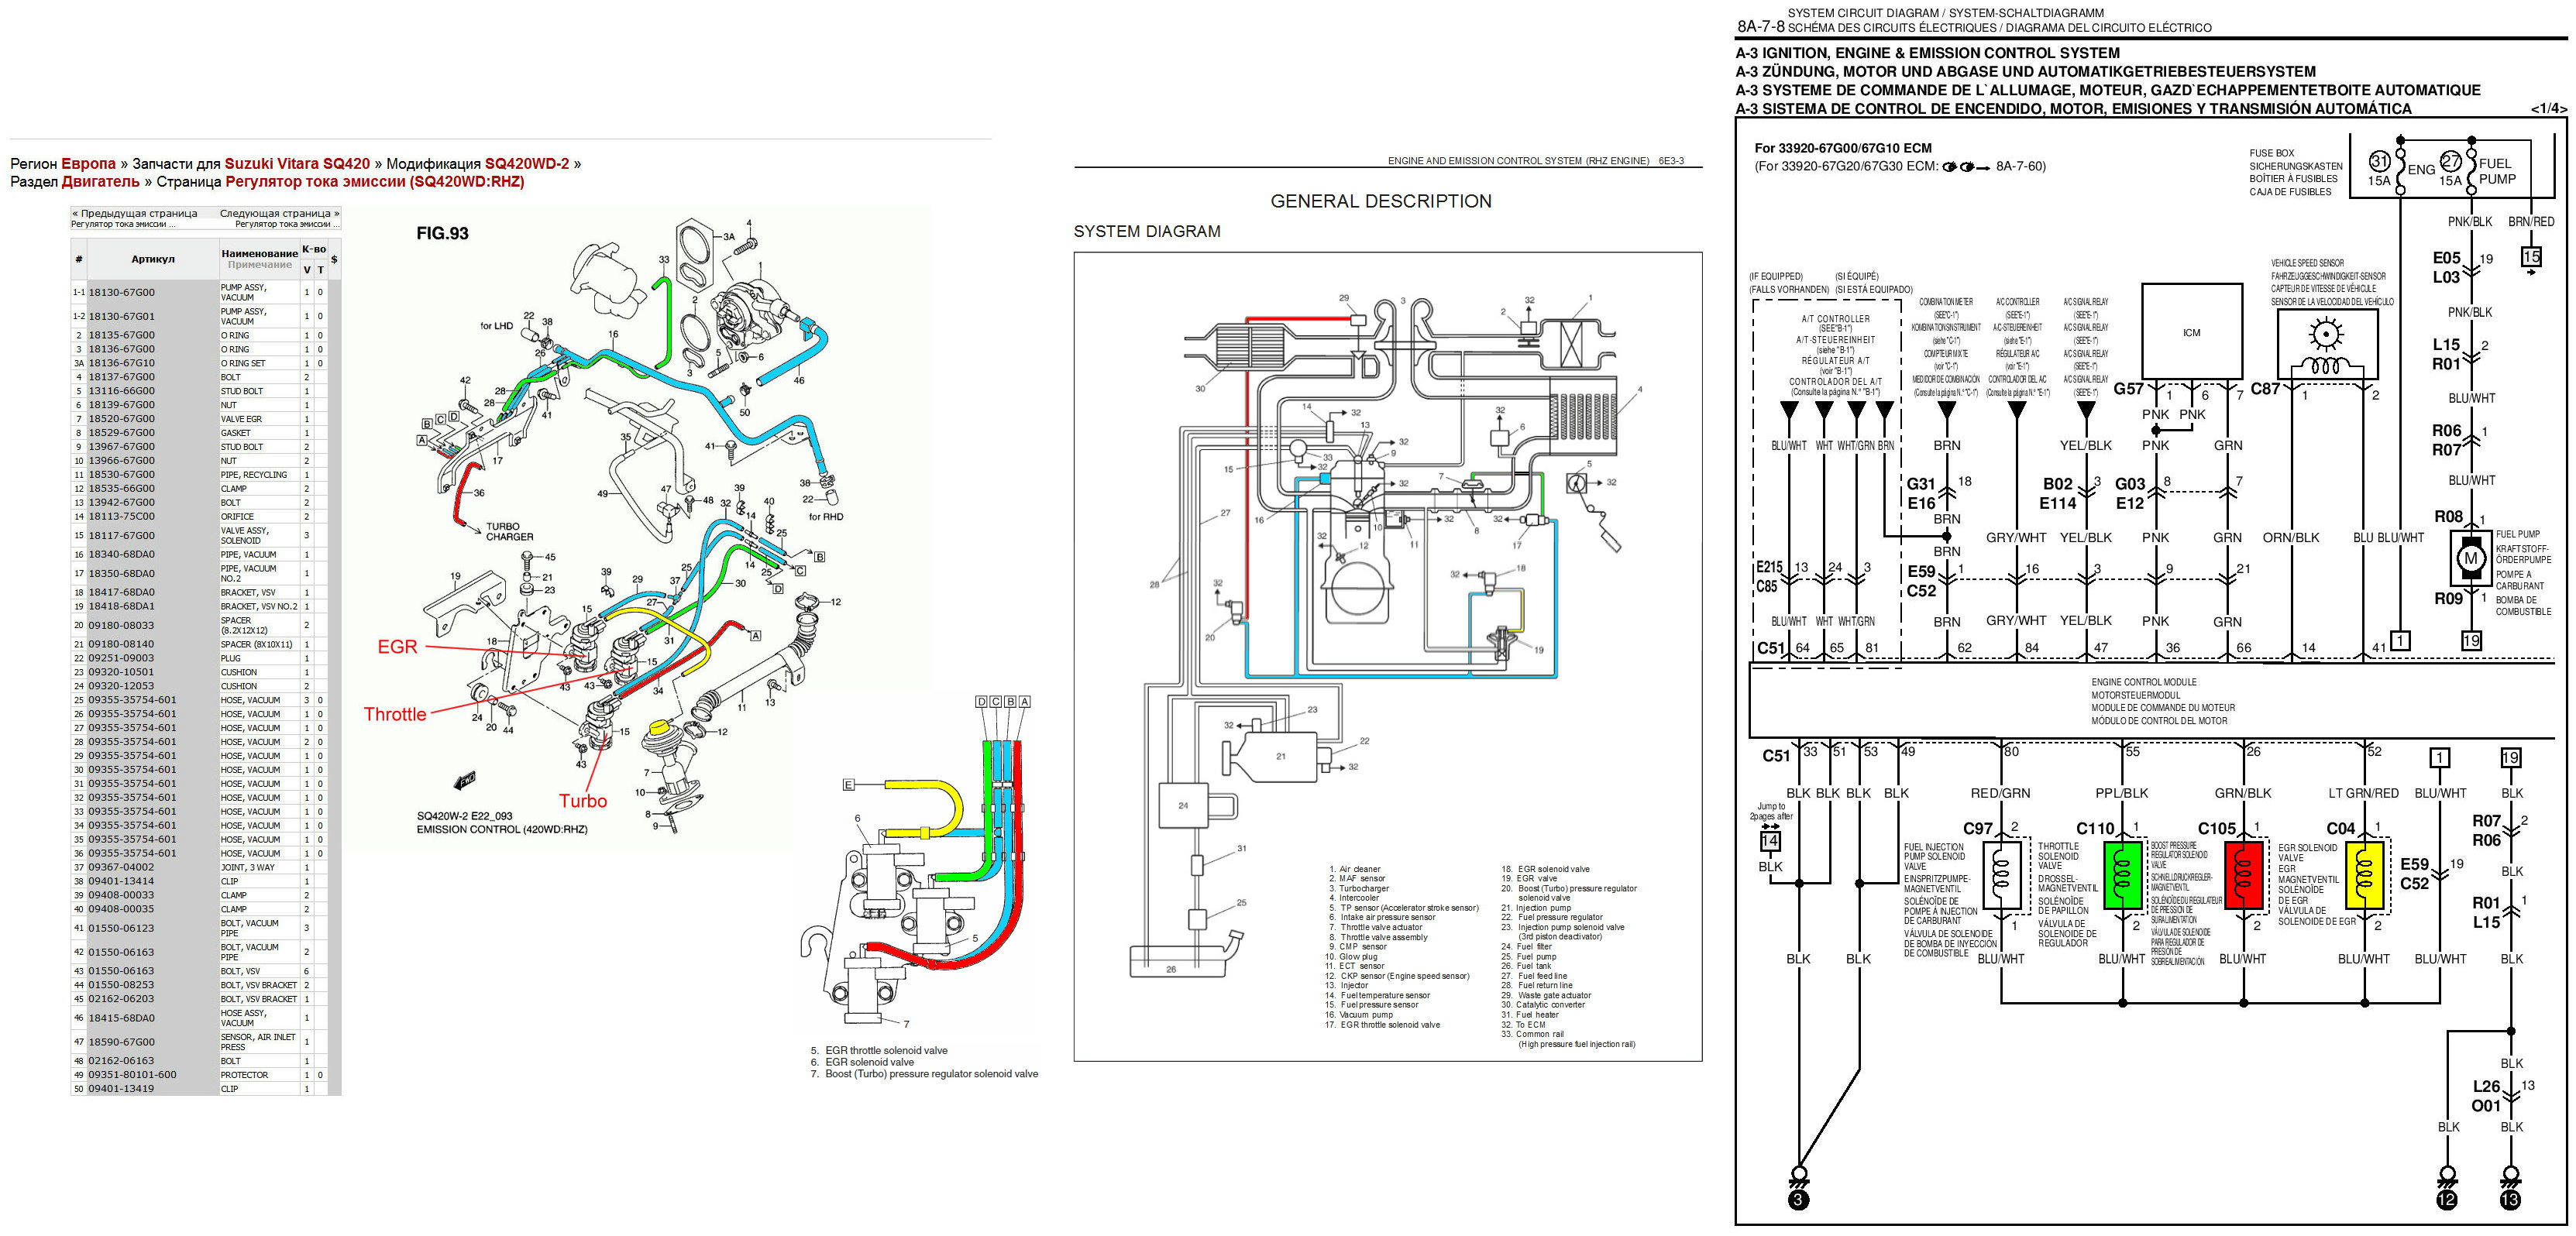 2001 suzuki grand vitara stereo wiring diagram. Black Bedroom Furniture Sets. Home Design Ideas